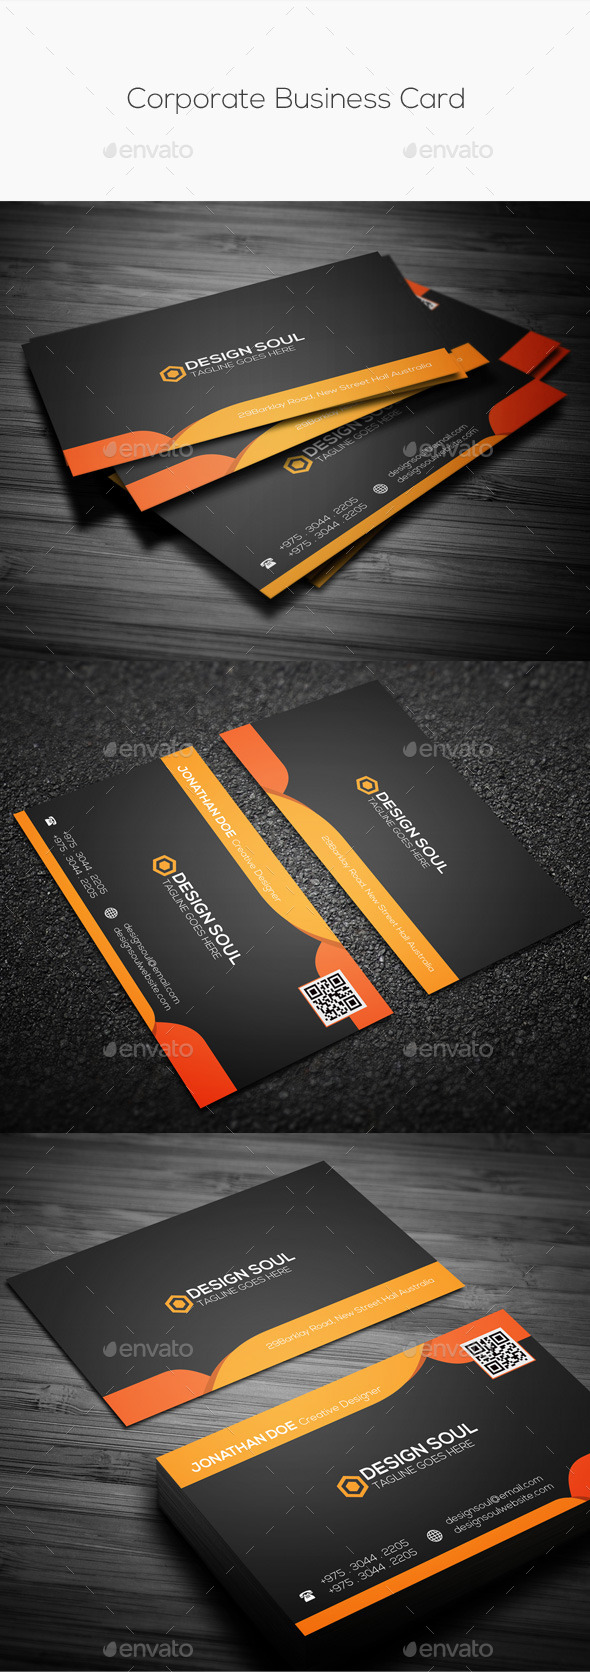 GraphicRiver Corporate Business Card 10049962